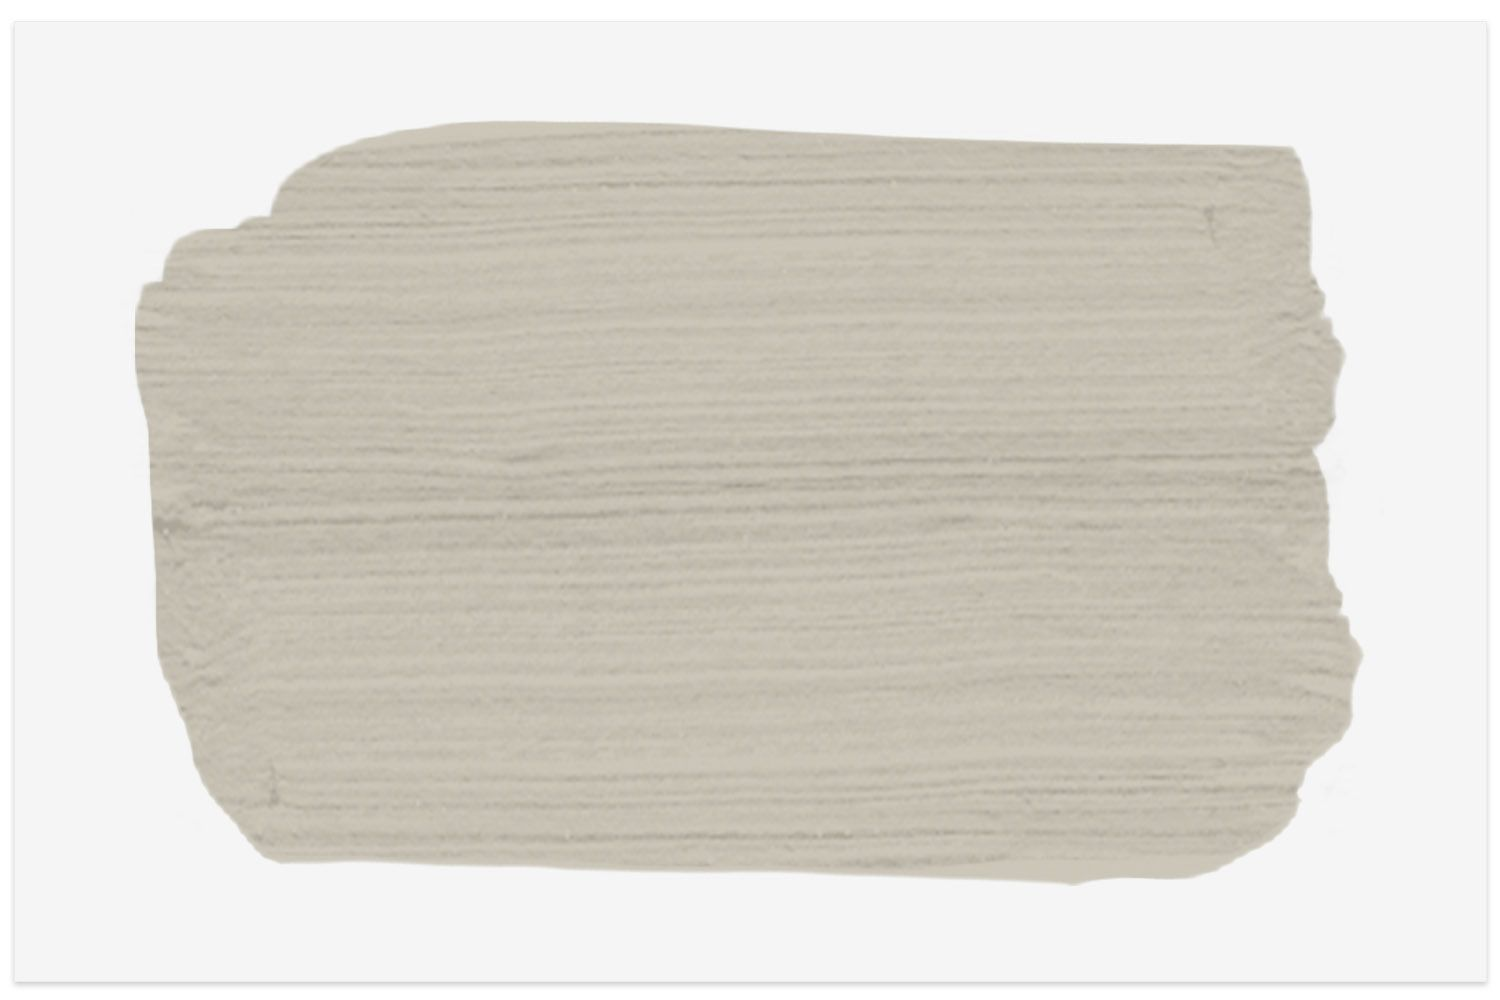 Revere Pewter HC-172 paint swatch from Benjamin Moore